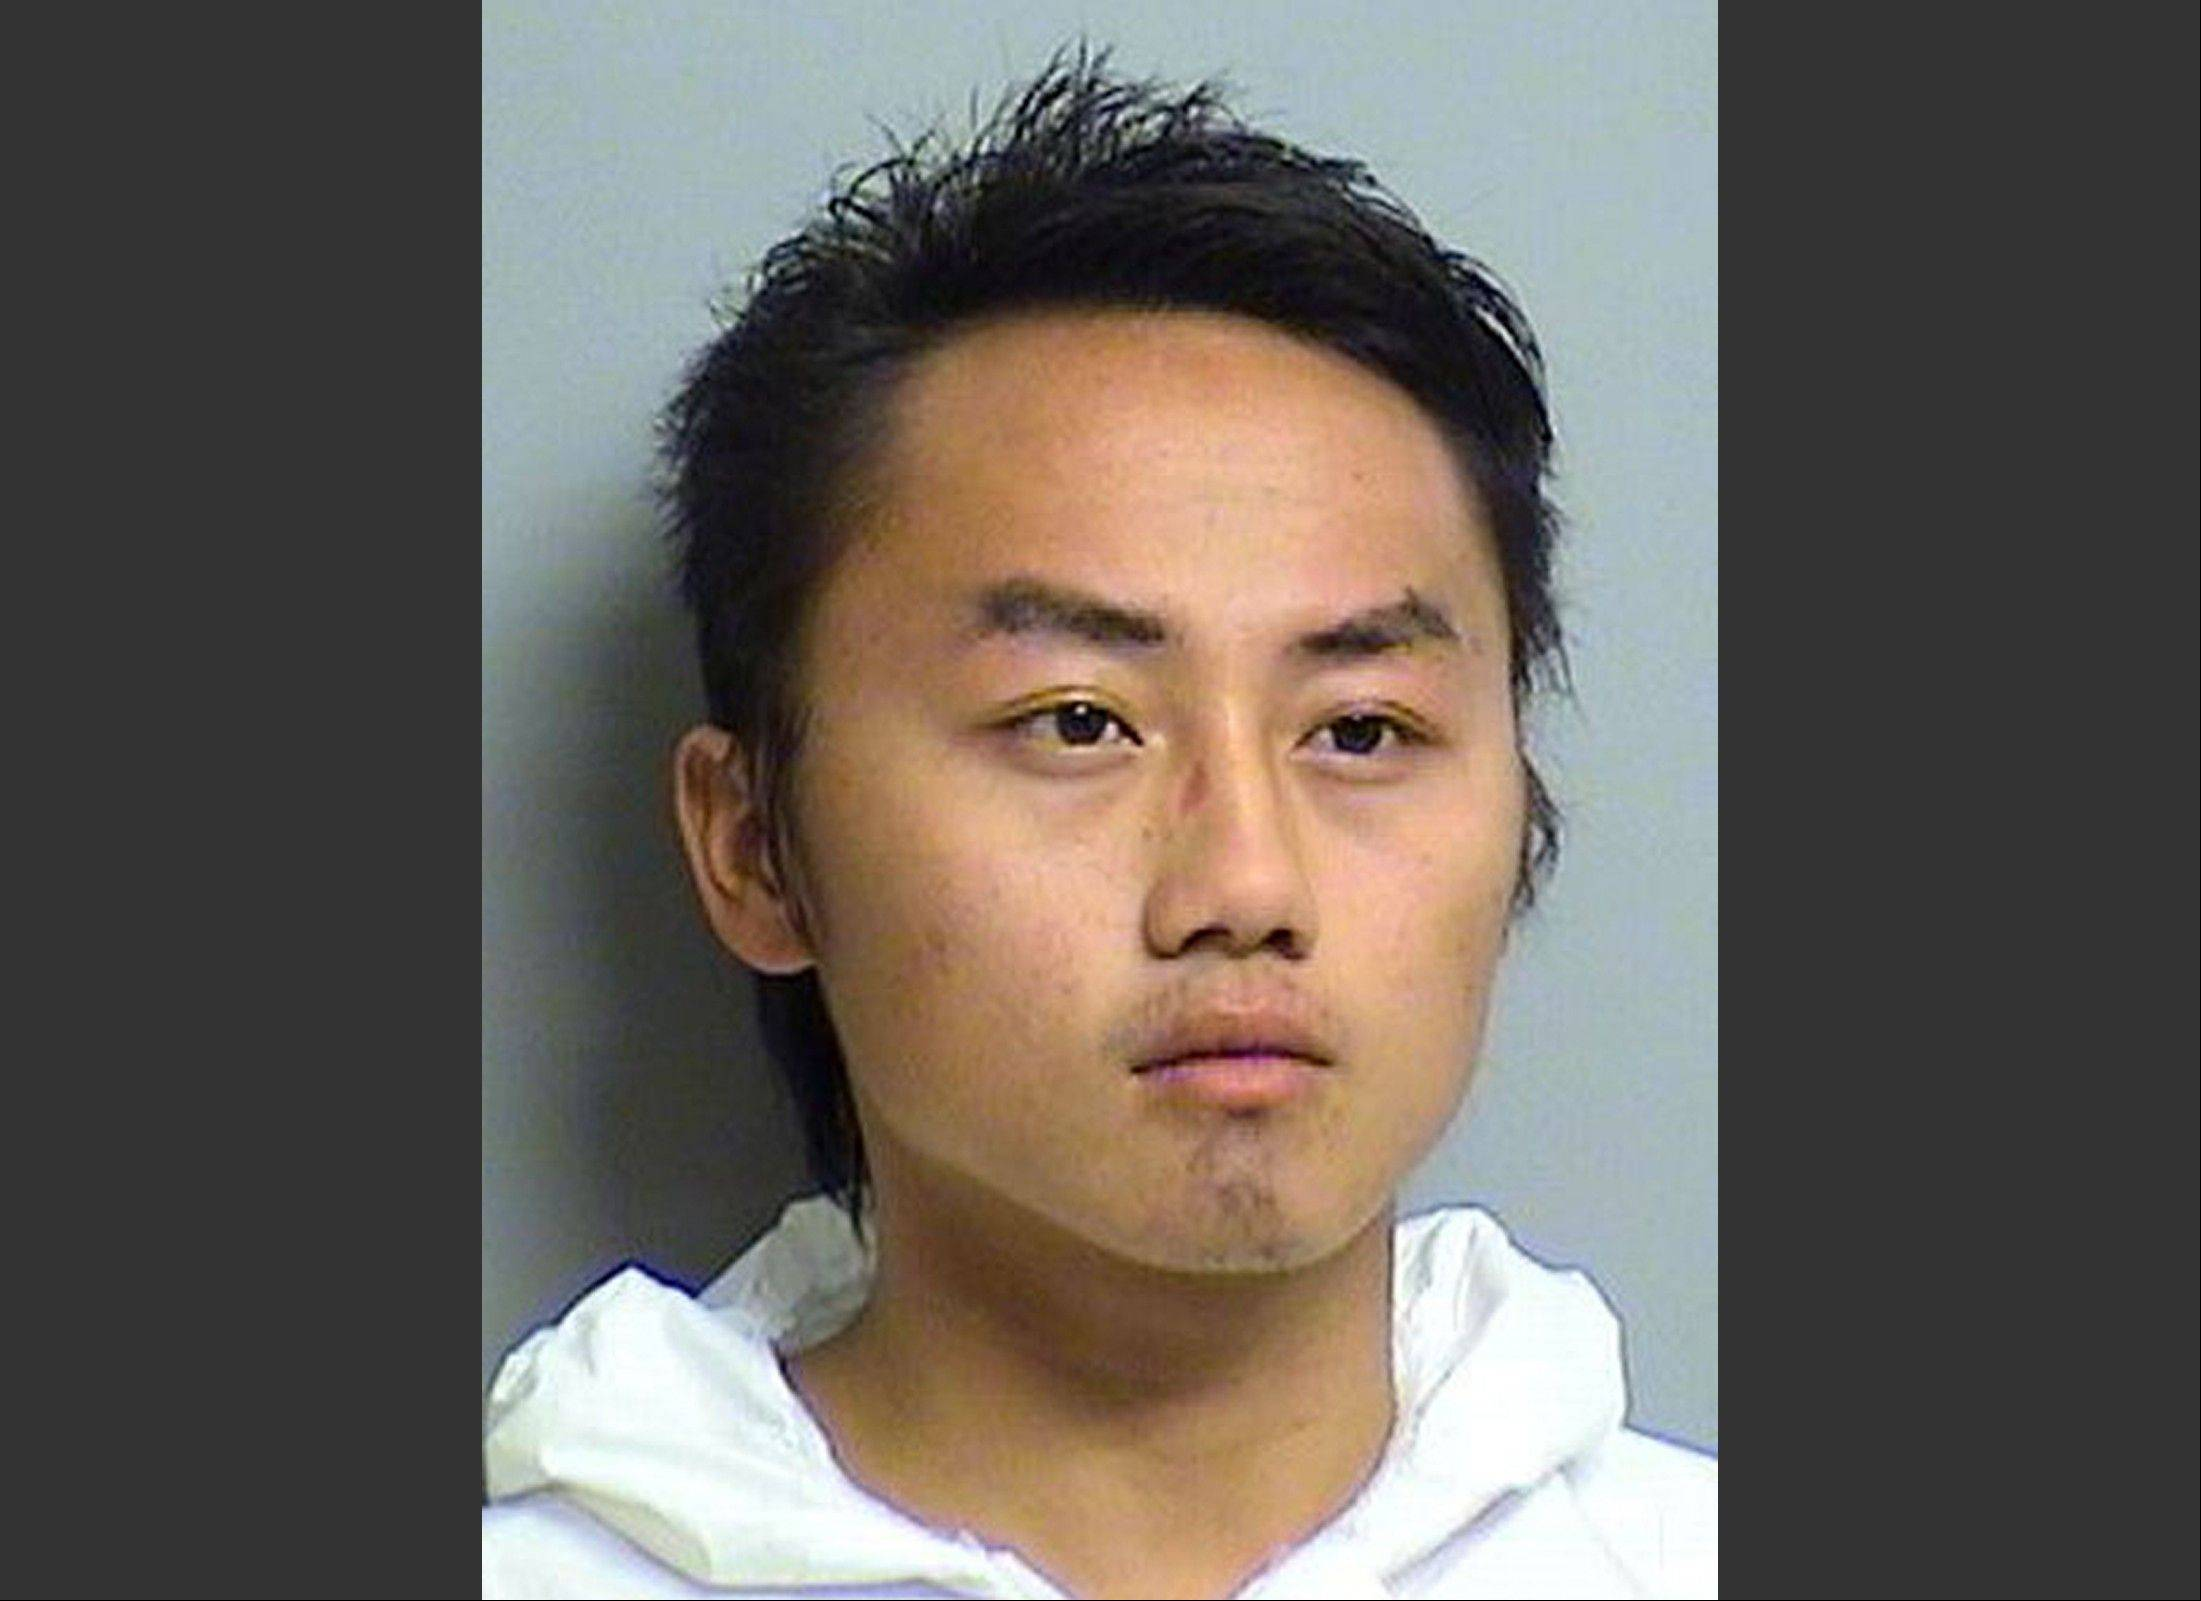 Boonmlee Lee, 21, one of two men facing multiple charges in the shooting of five people at a traditional Hmong New Year's festival in Tulsa, Okla., Saturday.